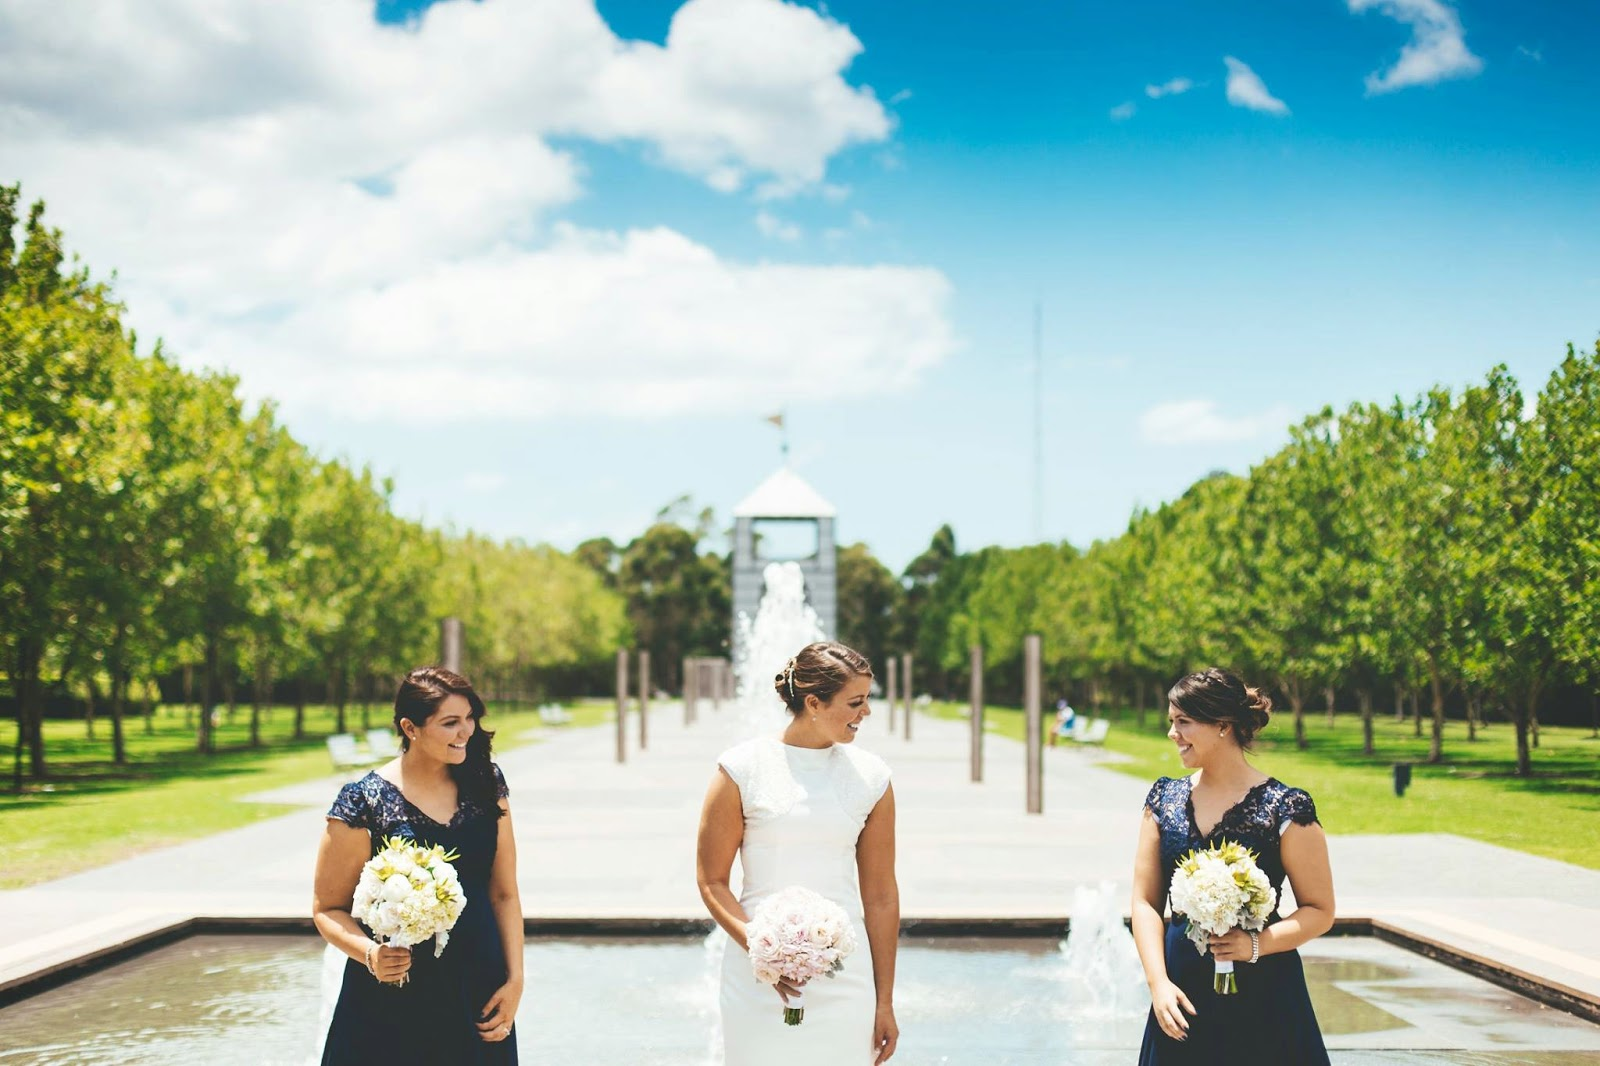 For The Reception Venue Blush Pink In Fishbowl Vases Jules Set Them Up At Waterview Bicentennial Park Homebush Bay